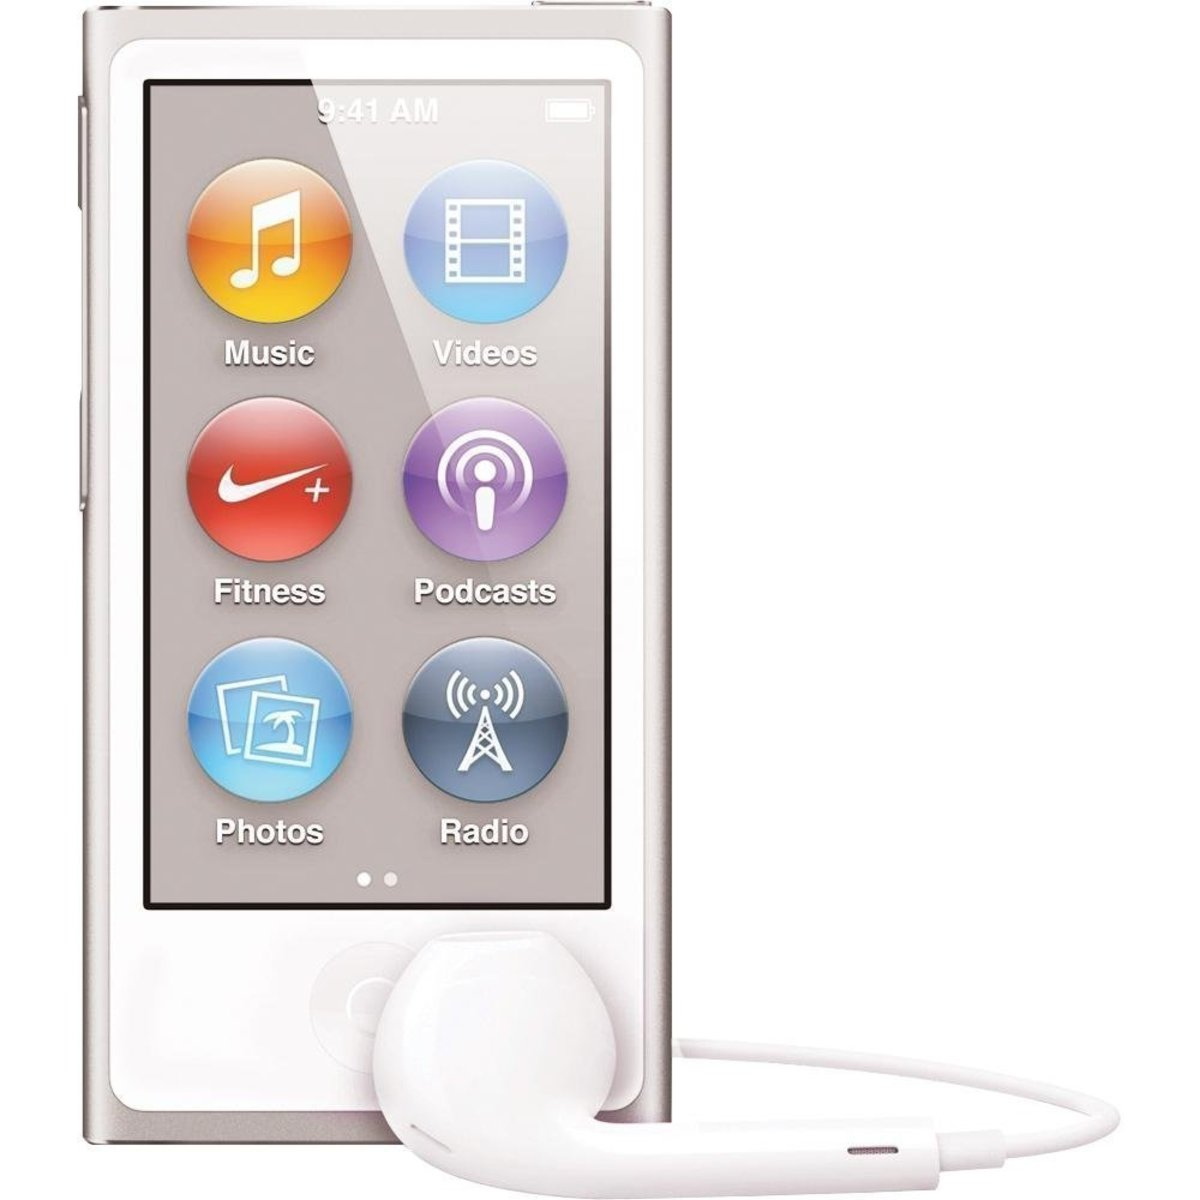 An endangered iPod